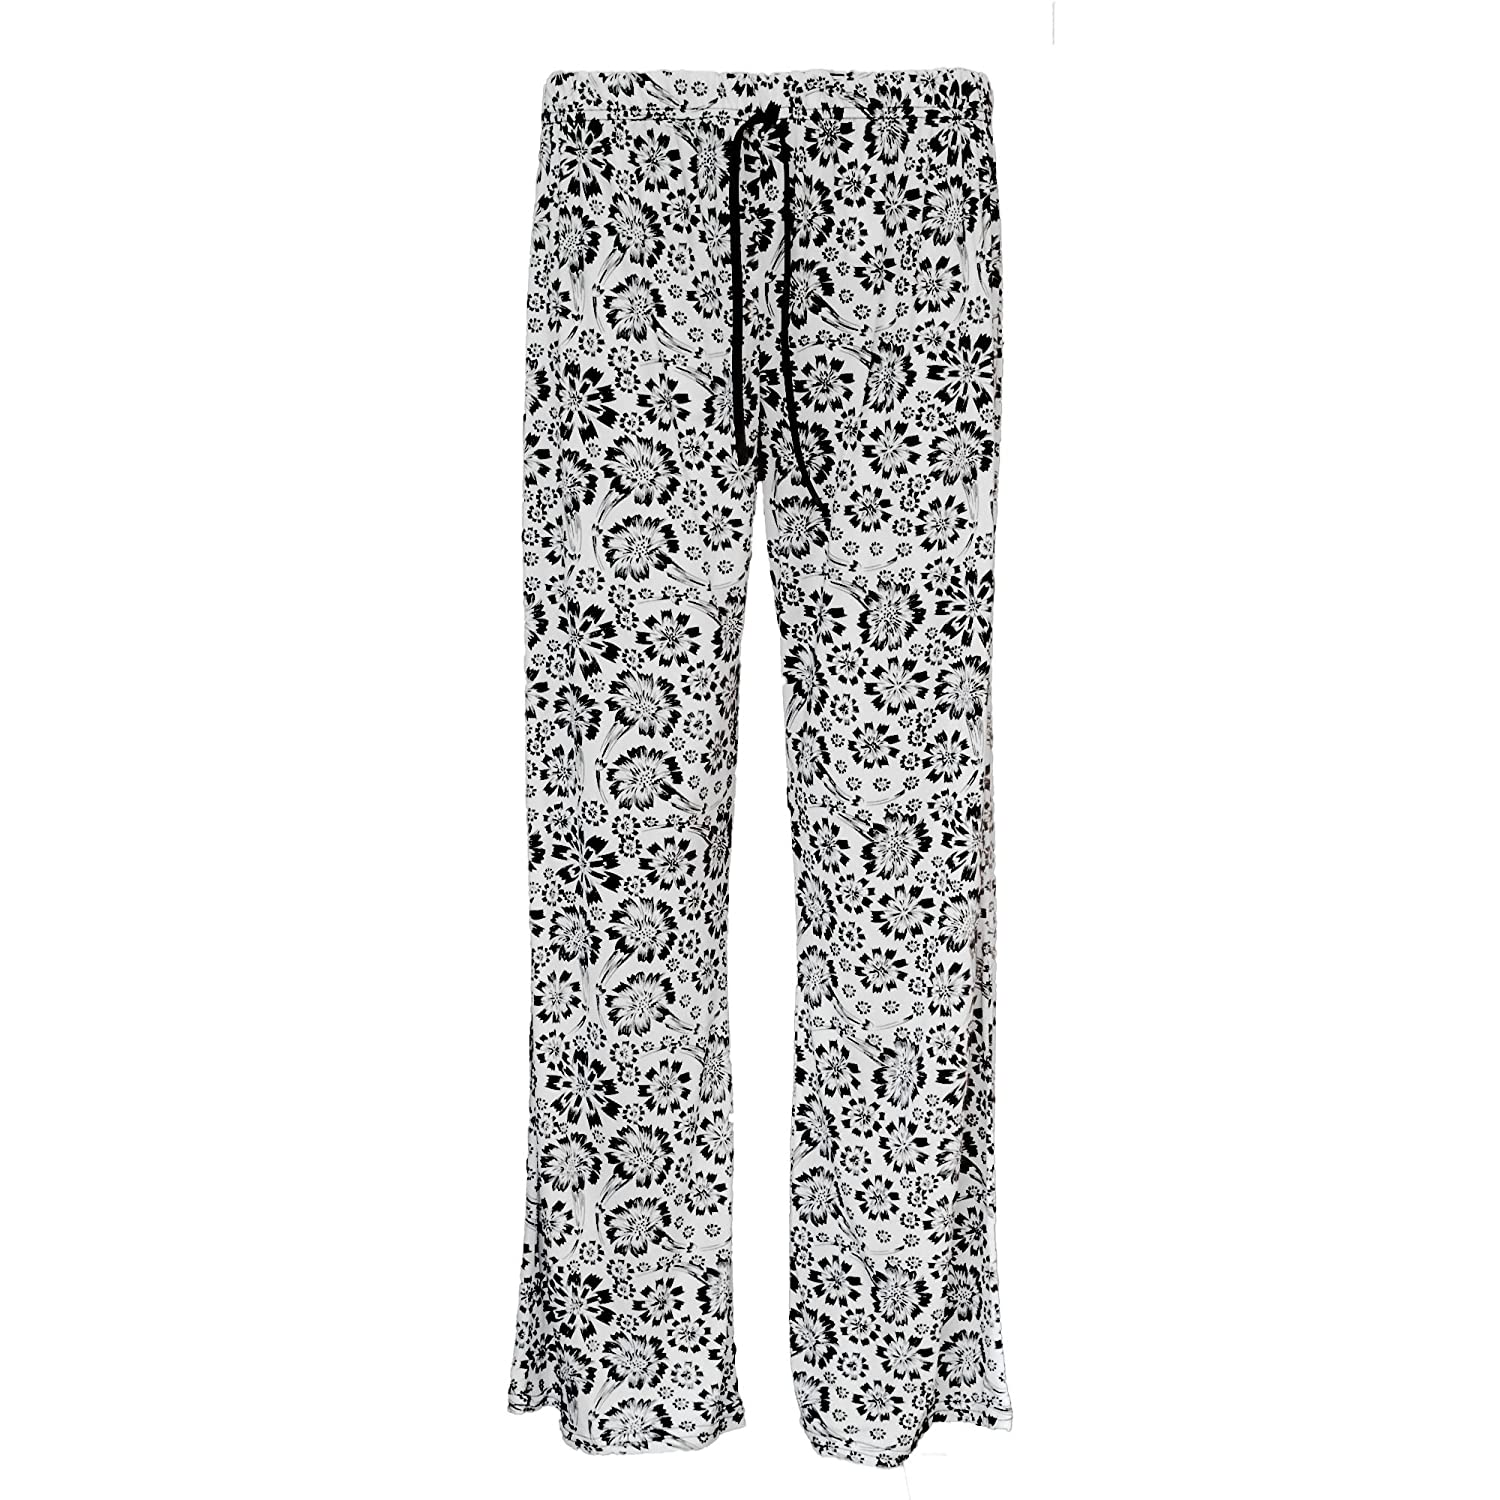 Home ware outlet Ladies Harem Pants Plazzo Womens Printed Floral Alibaba Baggy Trousers Paints Pyjama Plus Size UK 8-30